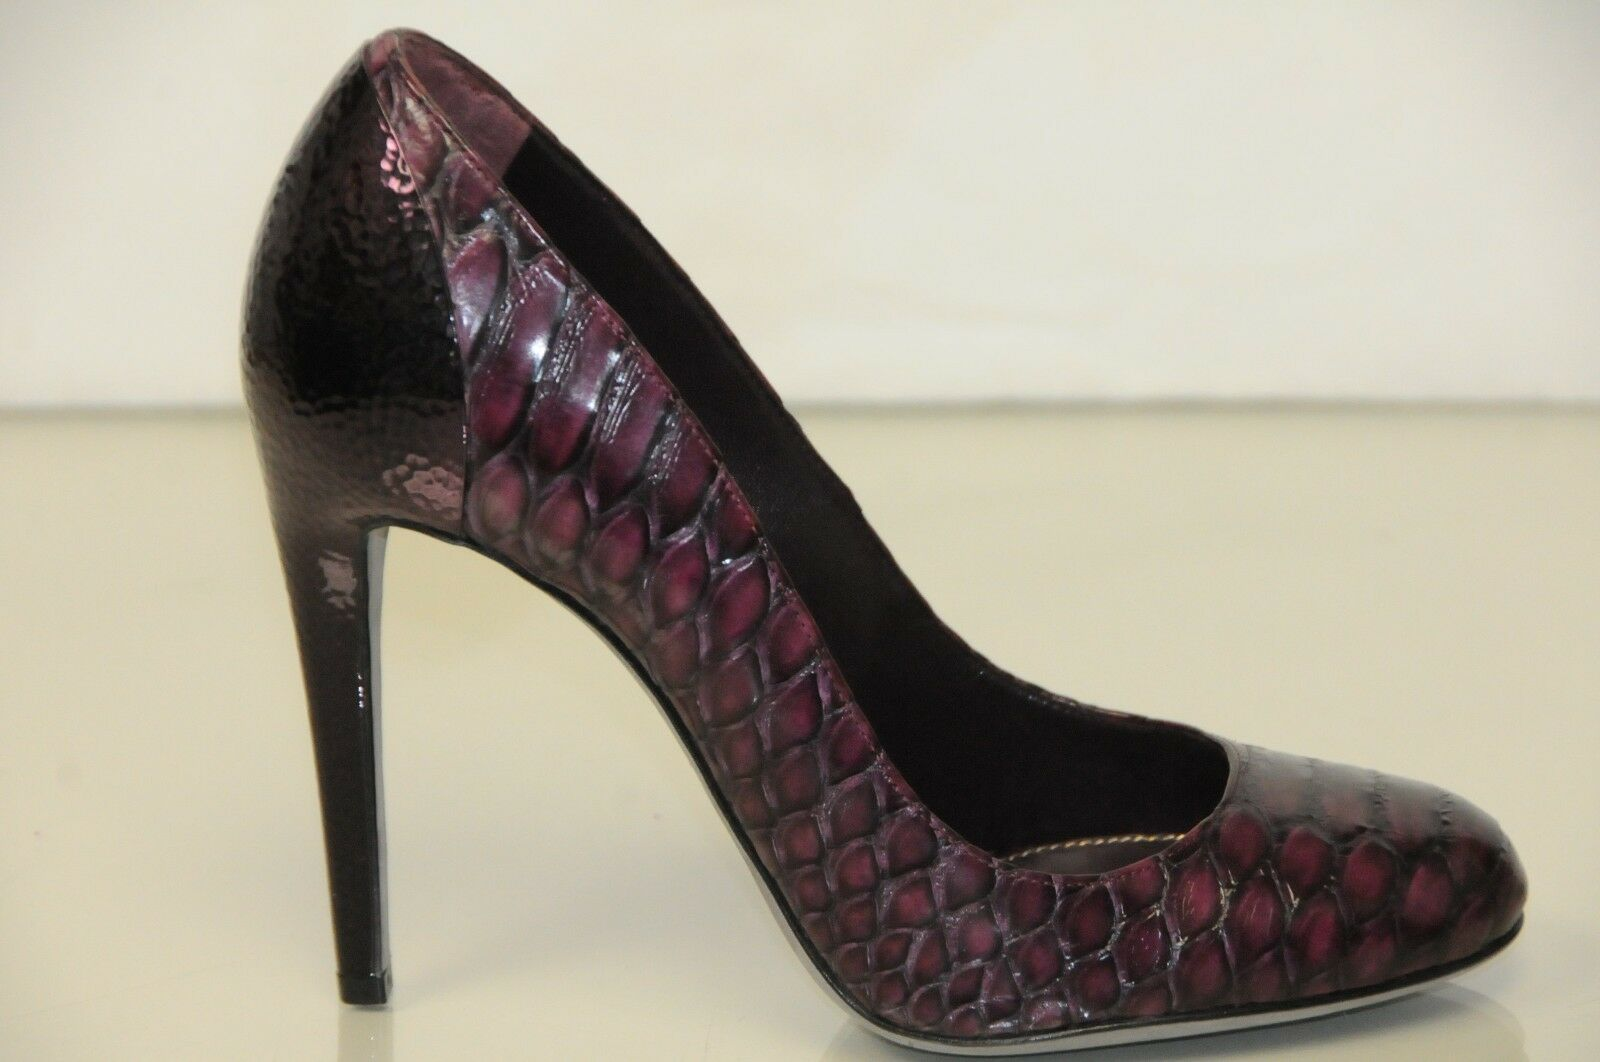 995 NEW Sergio Rossi EXOTIC Python Pitone Wood Pumps Burgundy Plum shoes 40